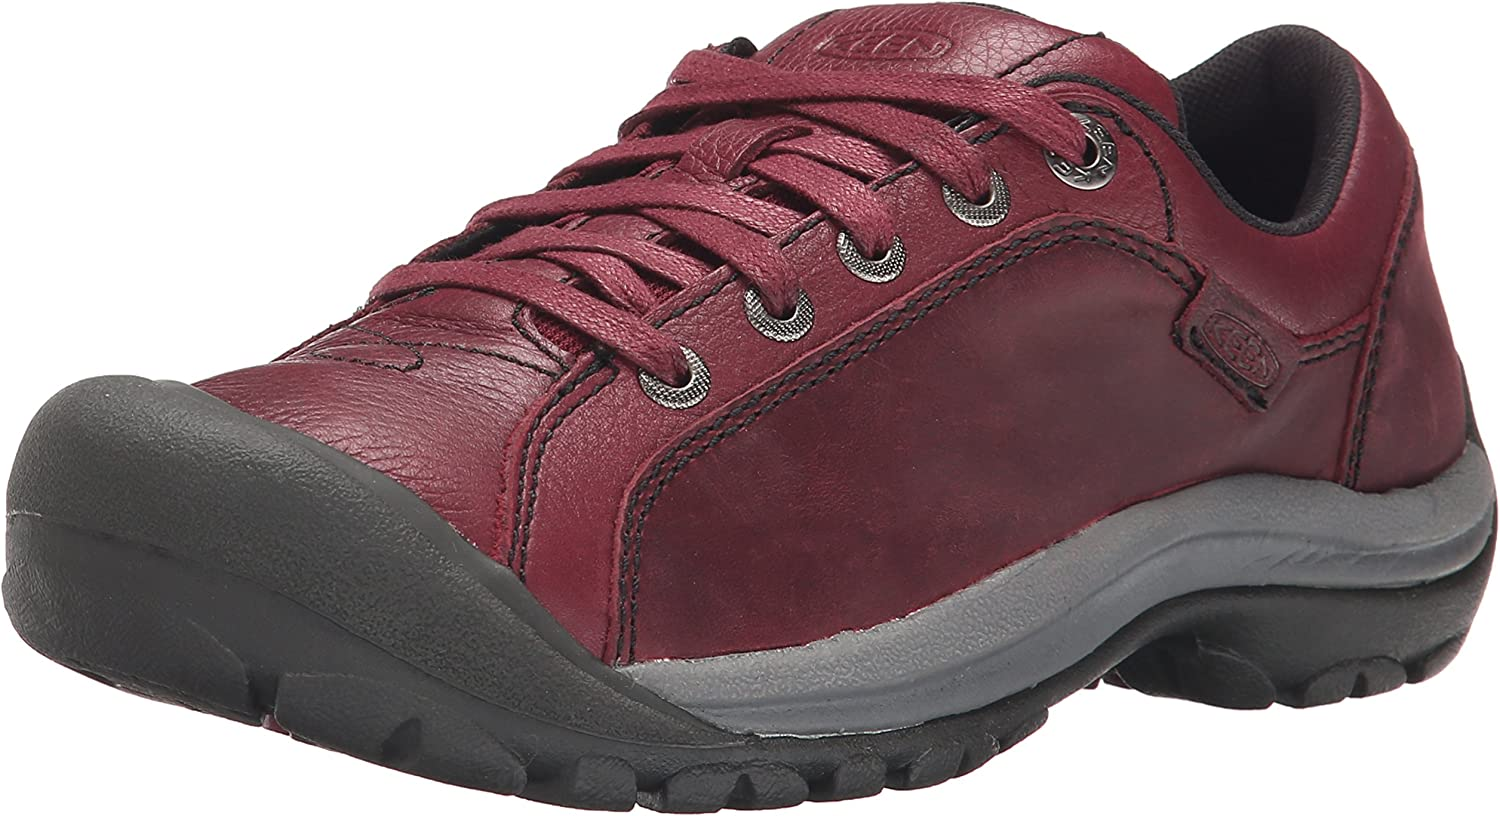 KEEN Women's Briggs Leather shoes Black